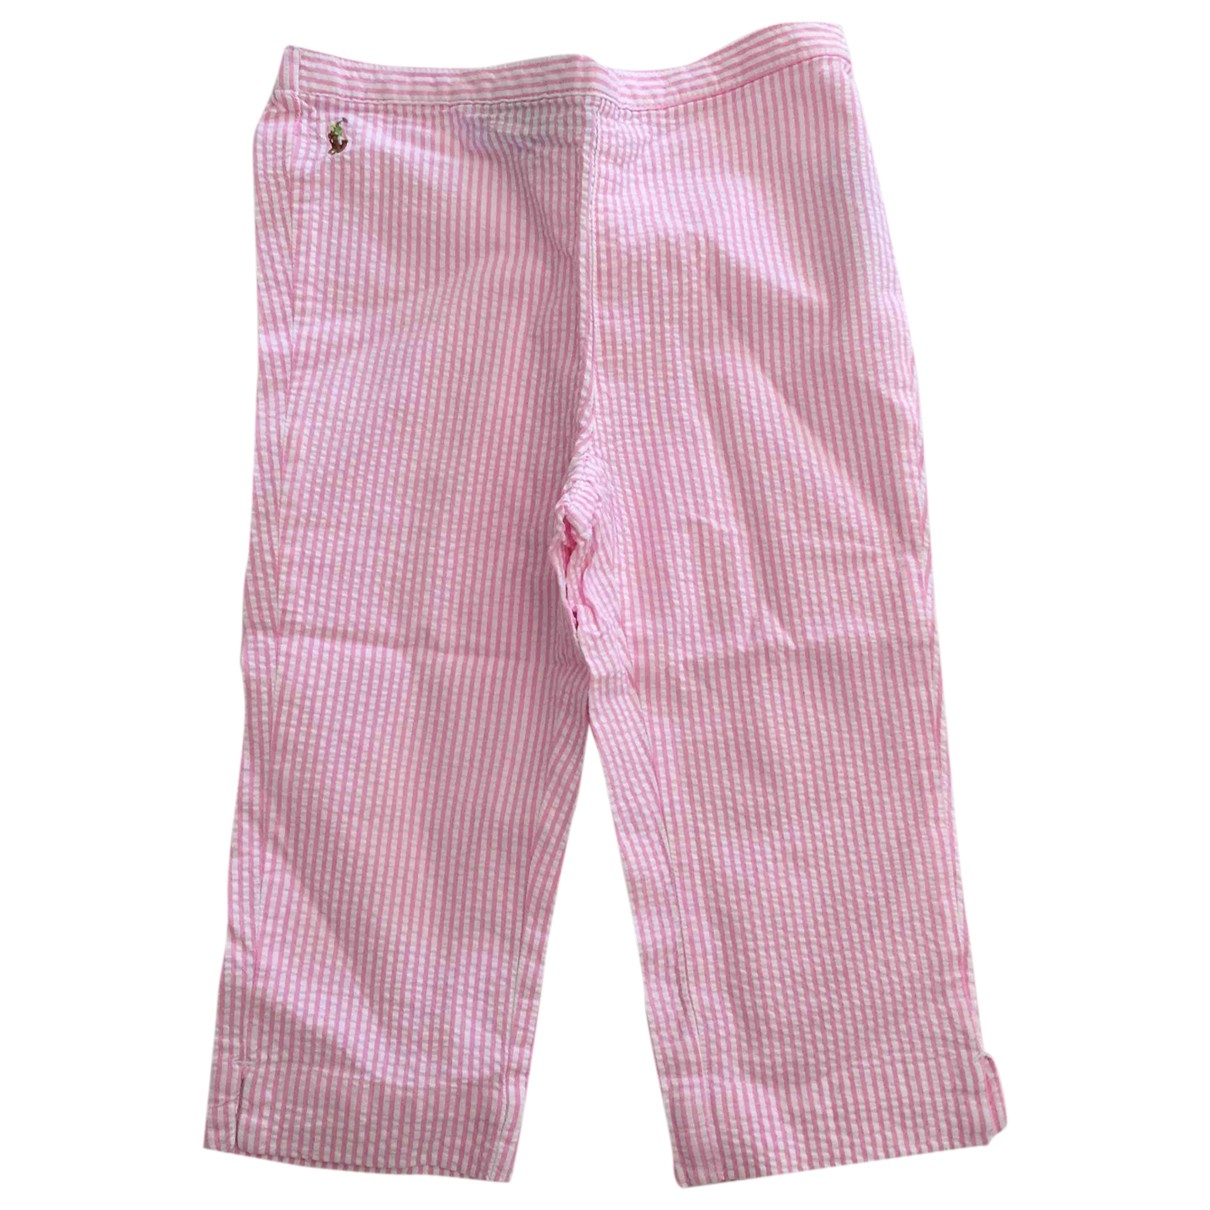 Ralph Lauren \N Pink Cotton Trousers for Kids 2 years - up to 86cm FR